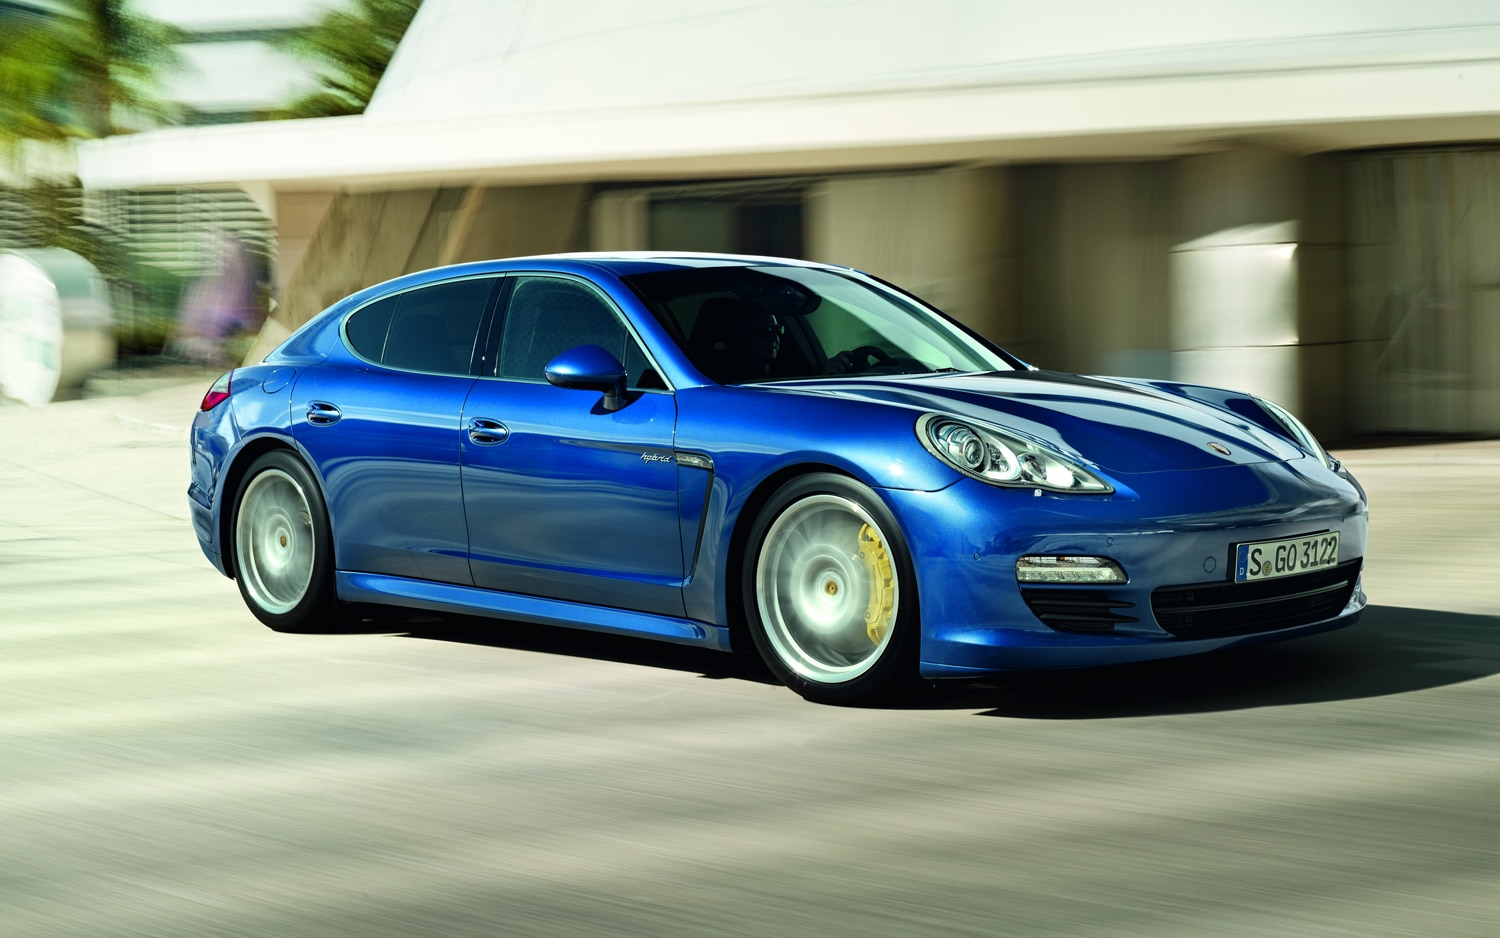 2012 Porsche Panamera S Hybrid Front Right Side View1